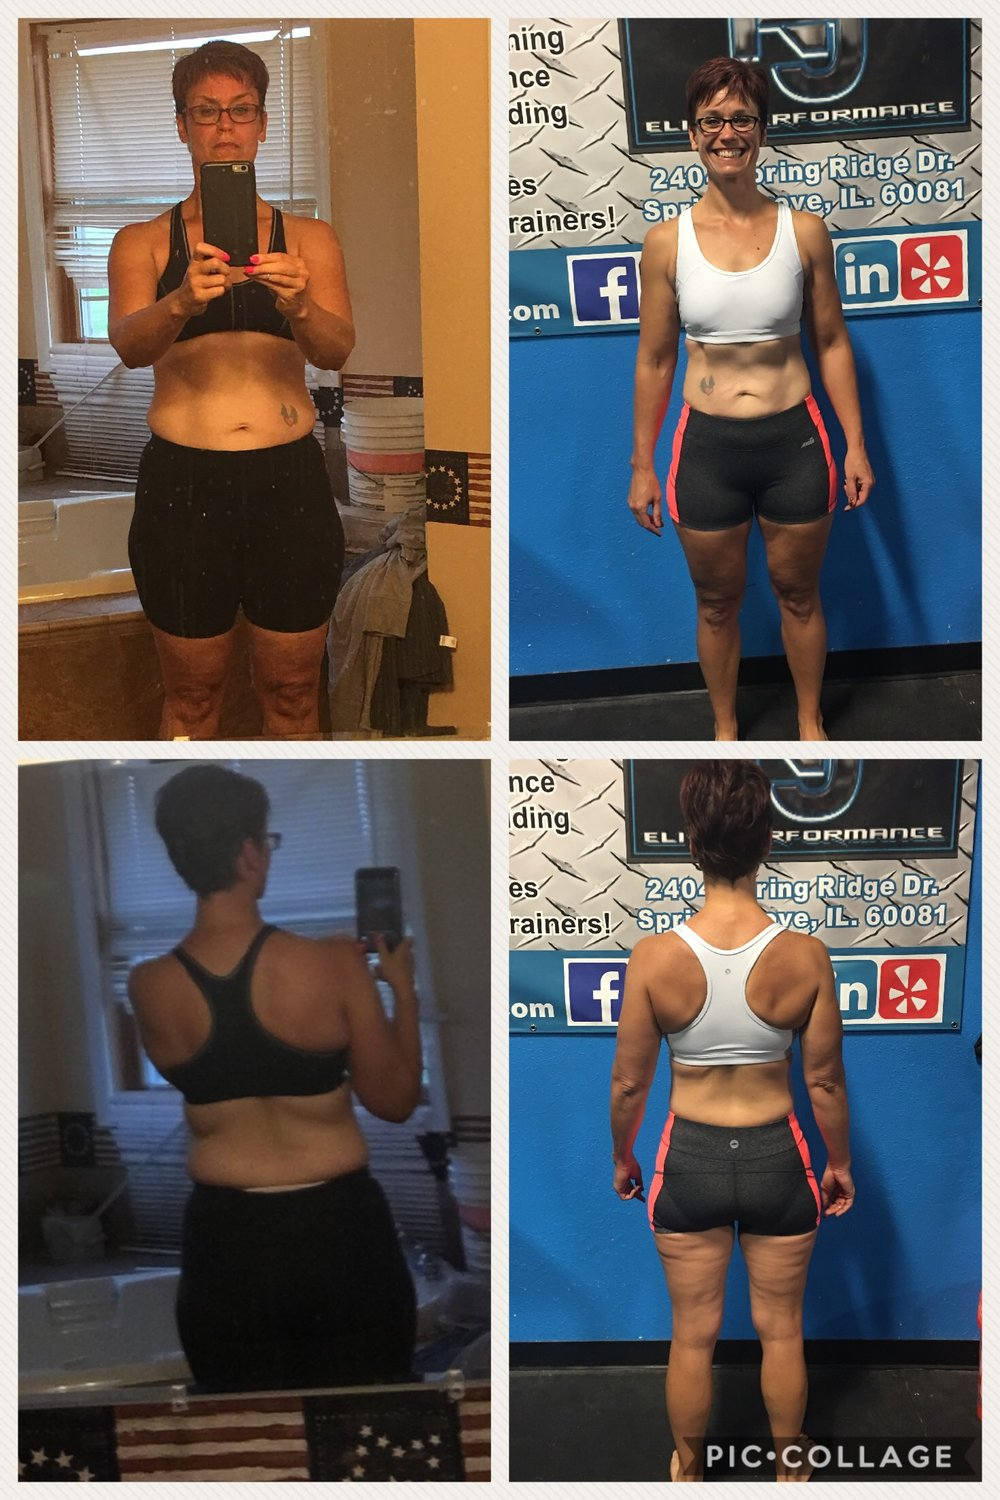 LORI HESS   Lori has been attending NJ Elite Performance since May of 2016. She currently personal trains with Ashley Starr, one of our amazing female trainers here at NJ Elite. Since Lori's training began, she has lost an incredible 22 inches, and she's down 20 pounds!!   In addition to her personal training, Lori also has added nutritional planning with Ashley, and daily bootcamps and spin classes into her fitness repertoire. Lori has an amazing ability to inspire all those around her without even trying.